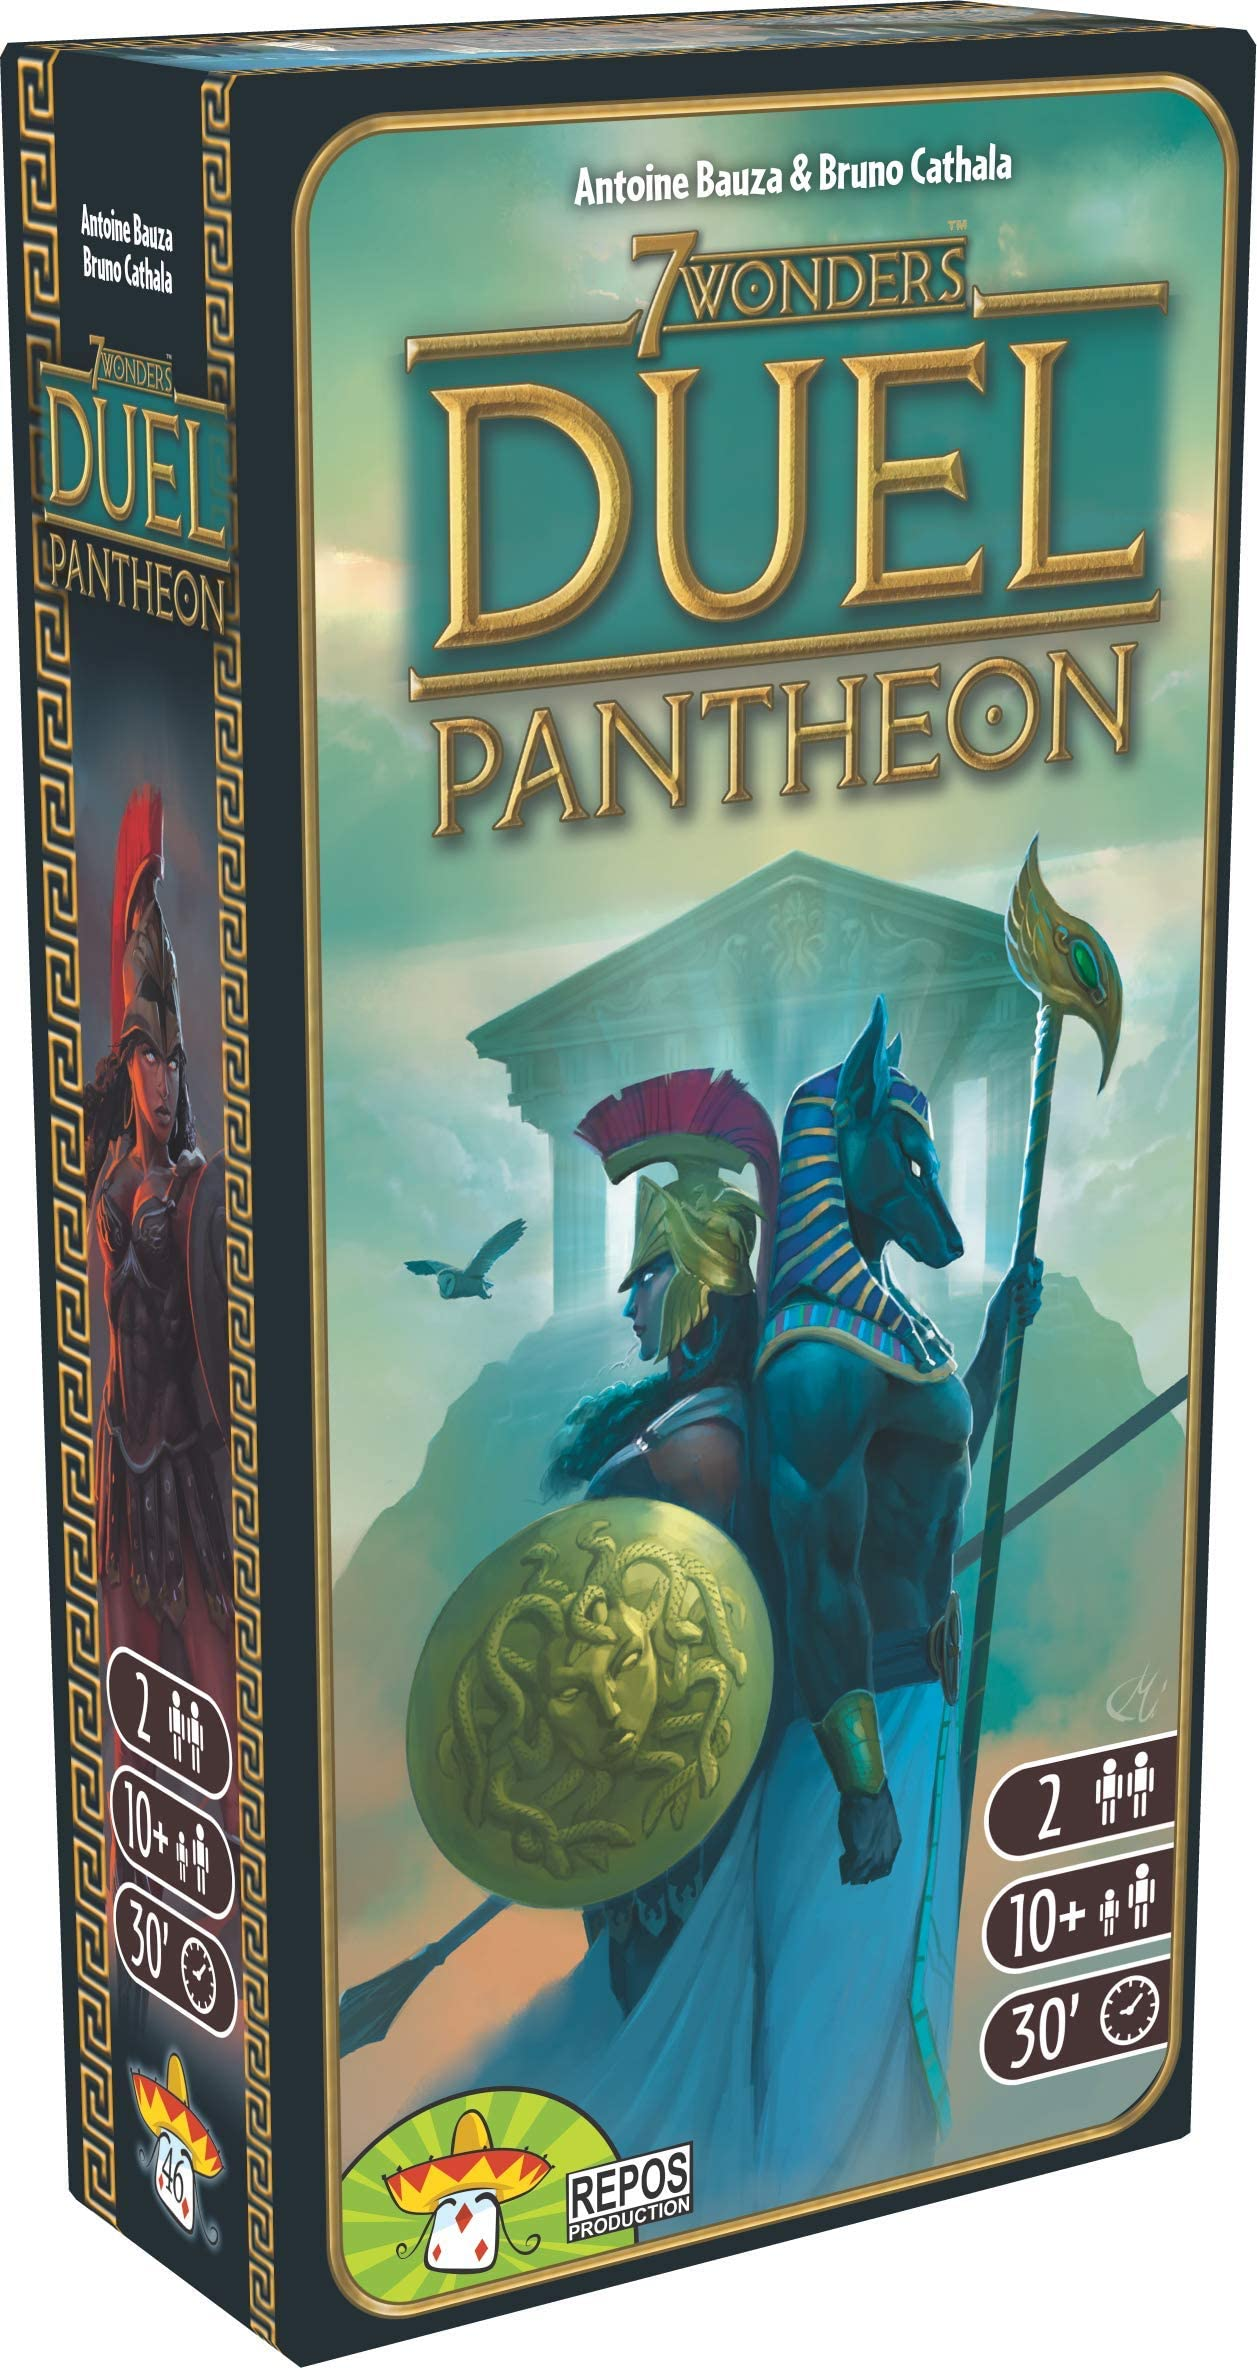 7 Wonders Duel Pantheon Board Game EXPANSION | Board Game for 2 Players | Strategy Board Game | Civilization Board Game | Board Game for Couples | Ages 10 and up | Made by Repos Production